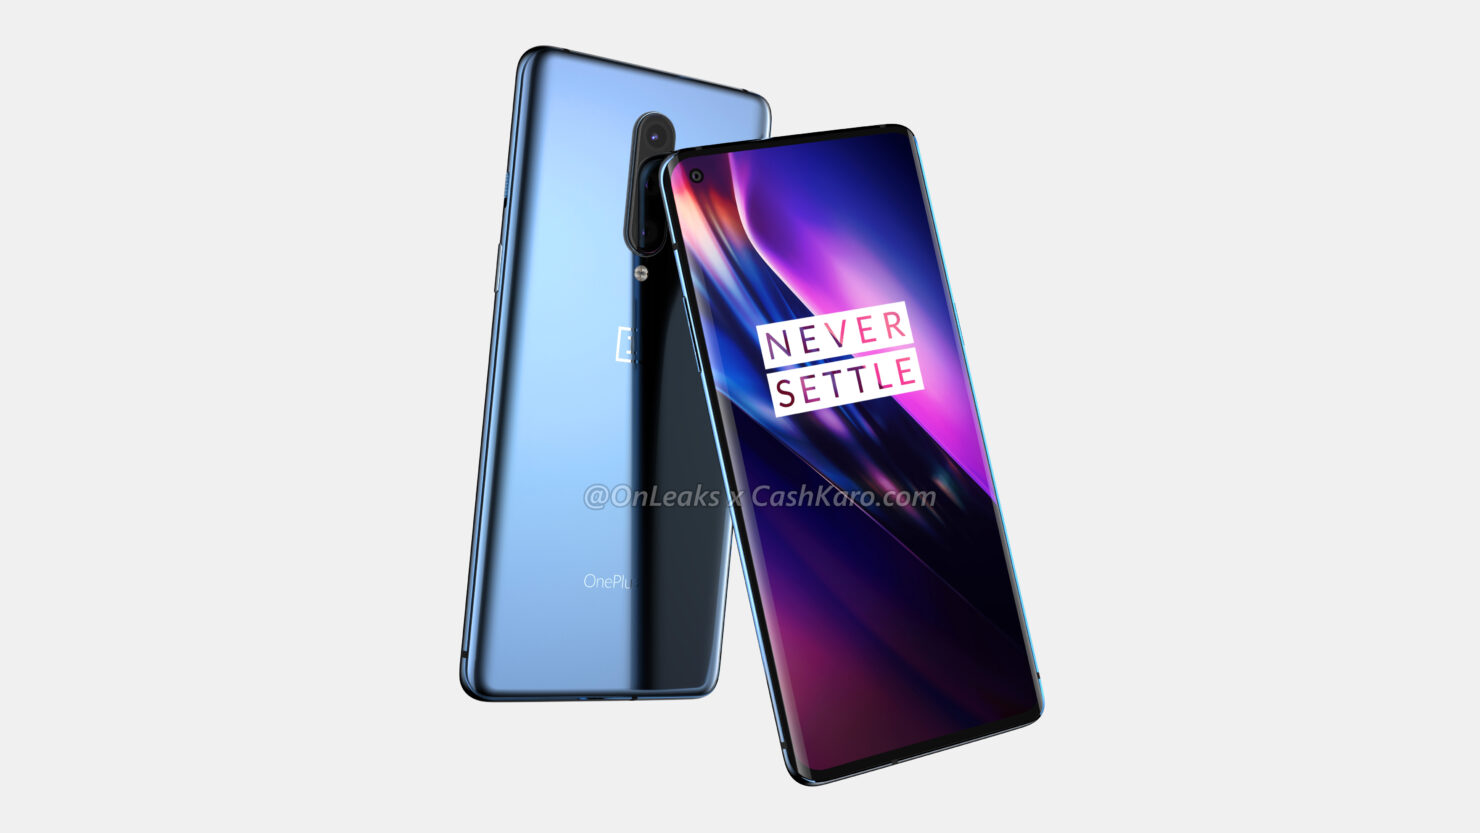 OnePlus 8 Renders Show Punch Hole Camera, Curved Edges & Slim Bezels